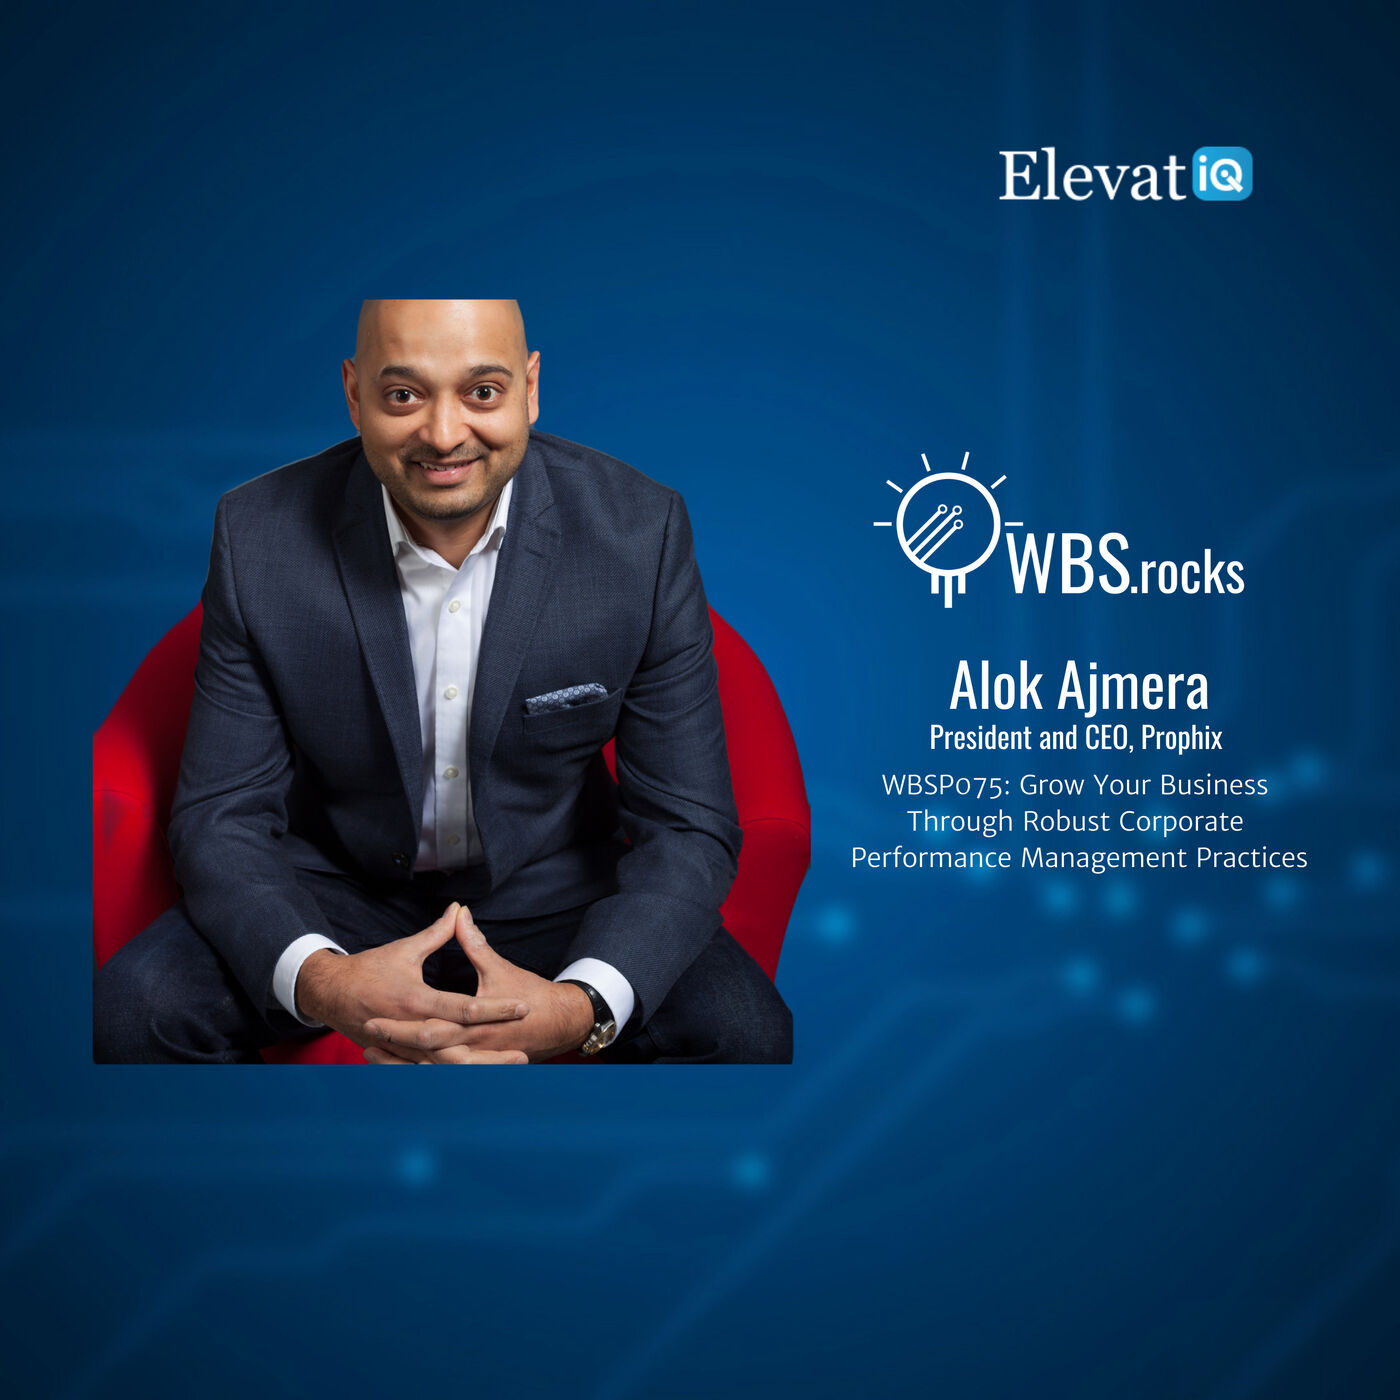 WBSP075: Grow Your Business Through Robust Corporate Performance Management Practices w/ Alok Ajmera